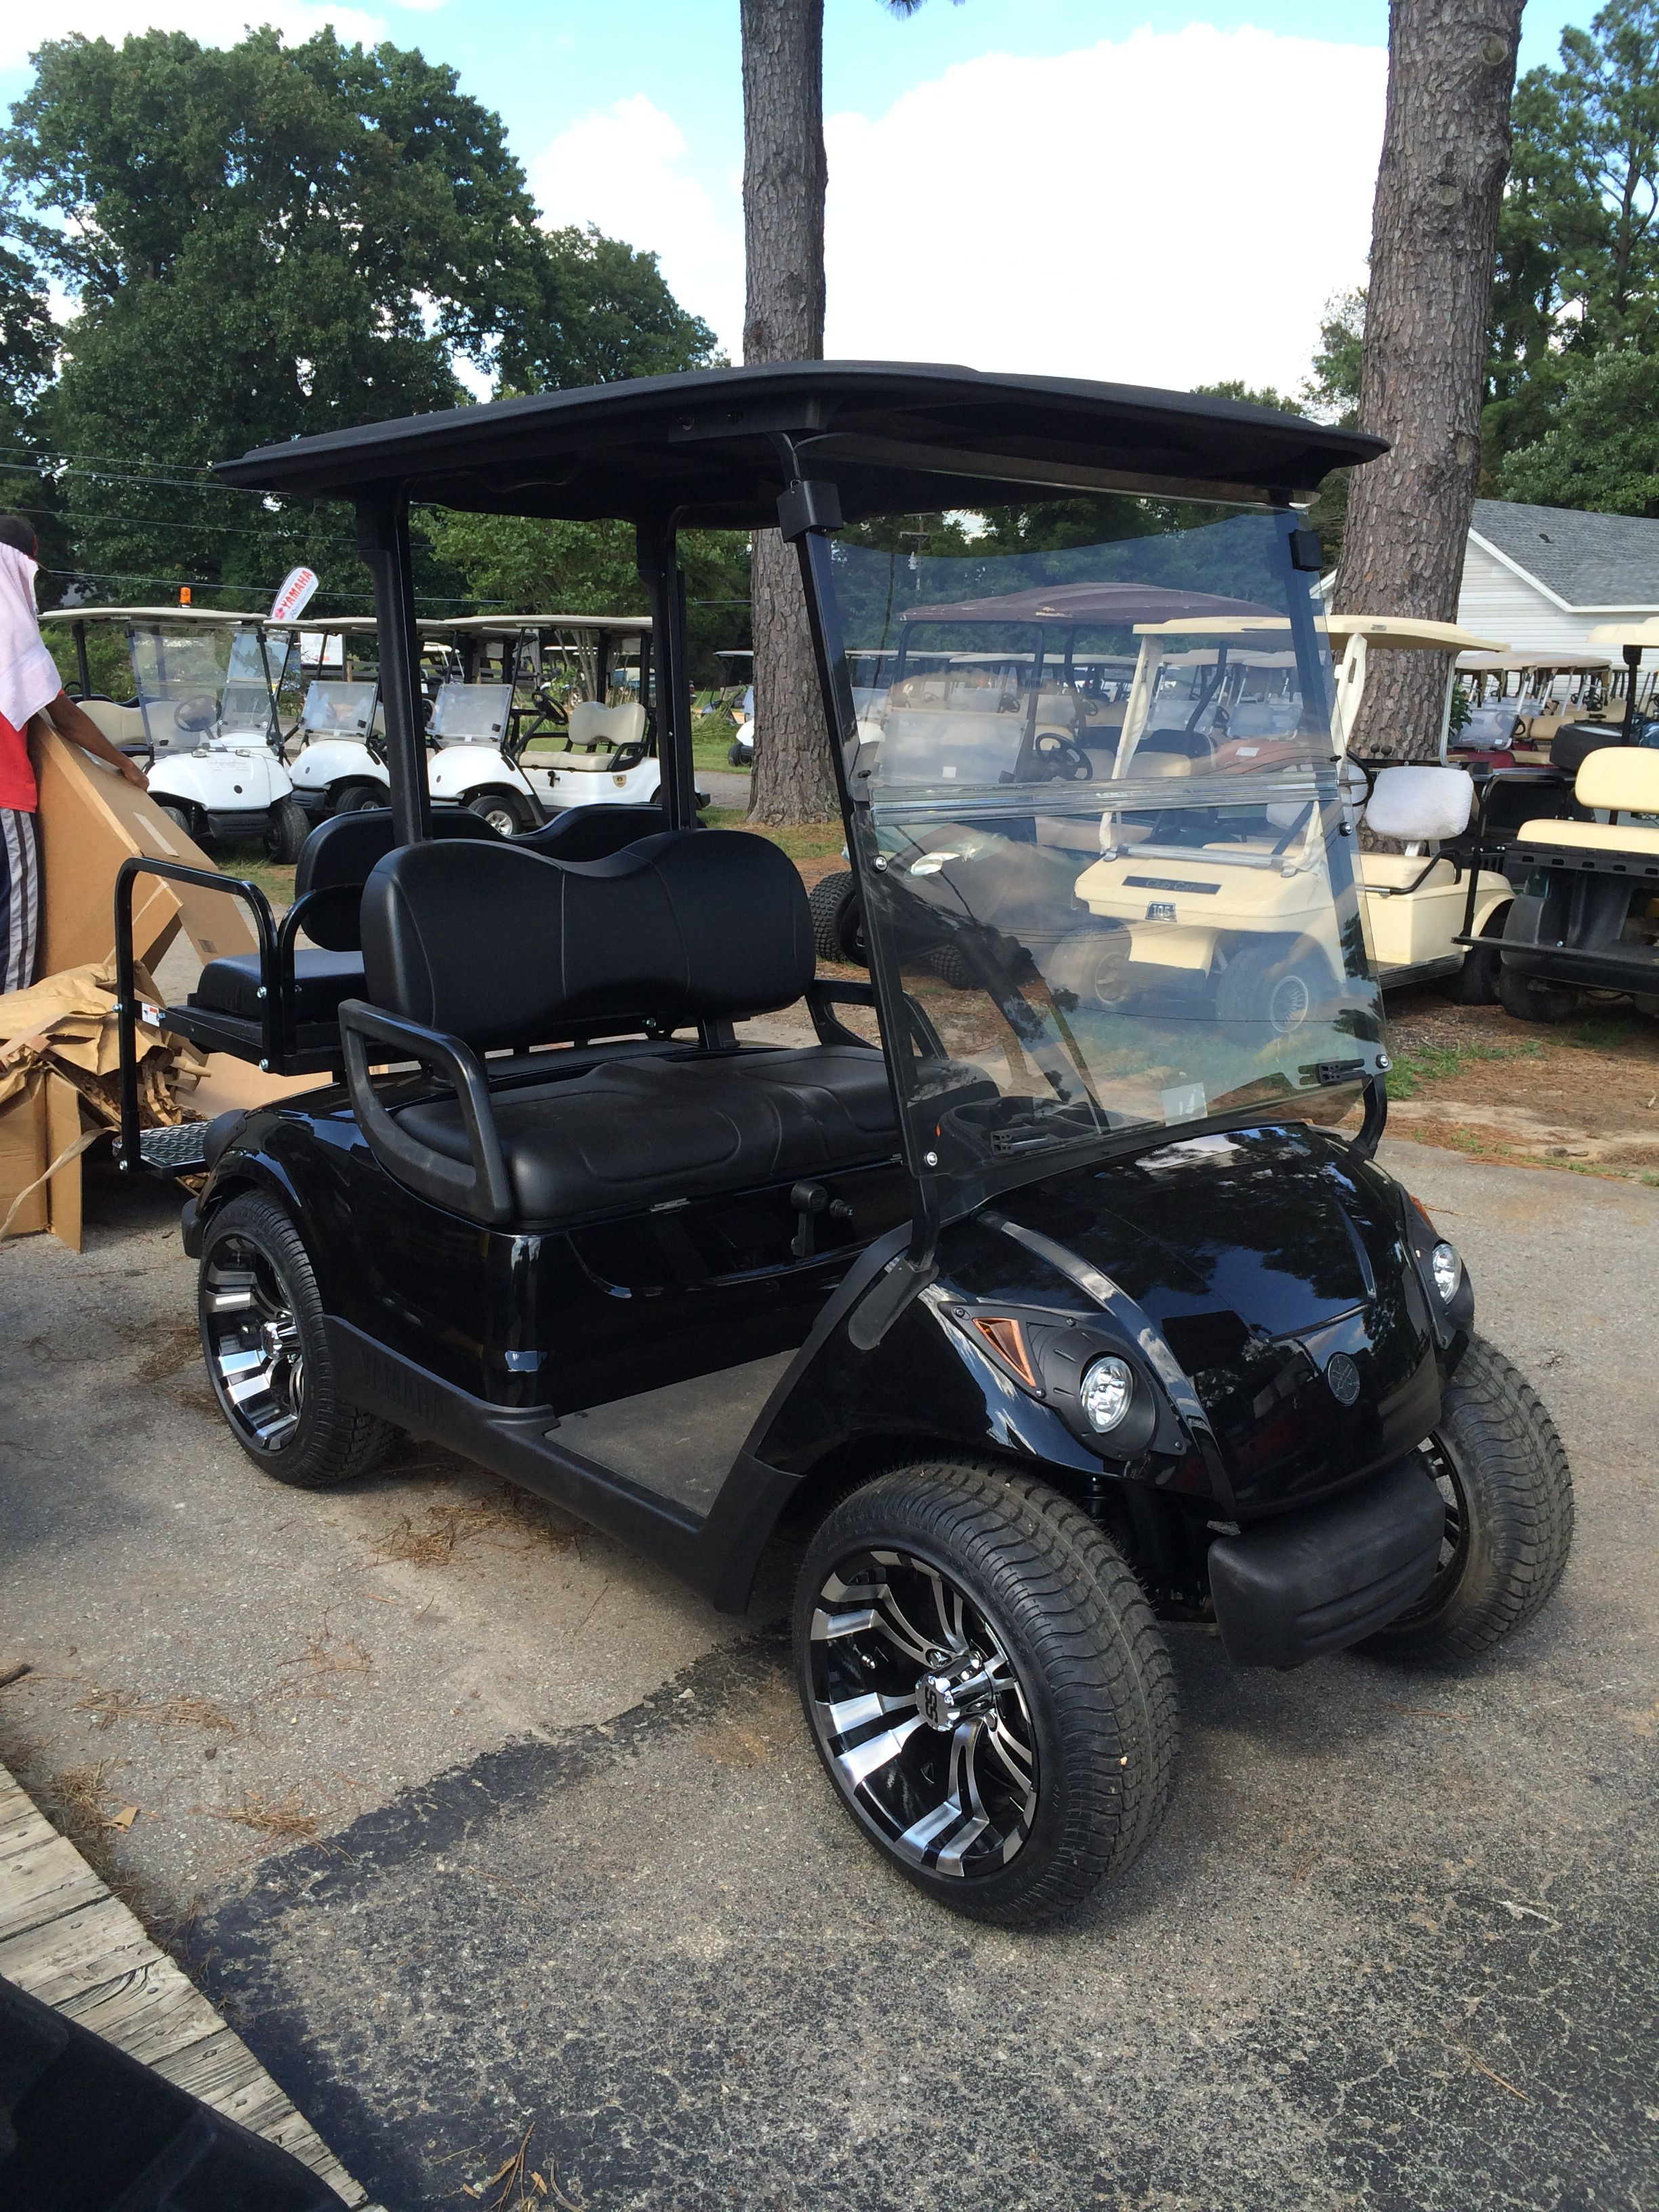 Dart's Carts Blackout Edition, Purchased by Mr. Johnson